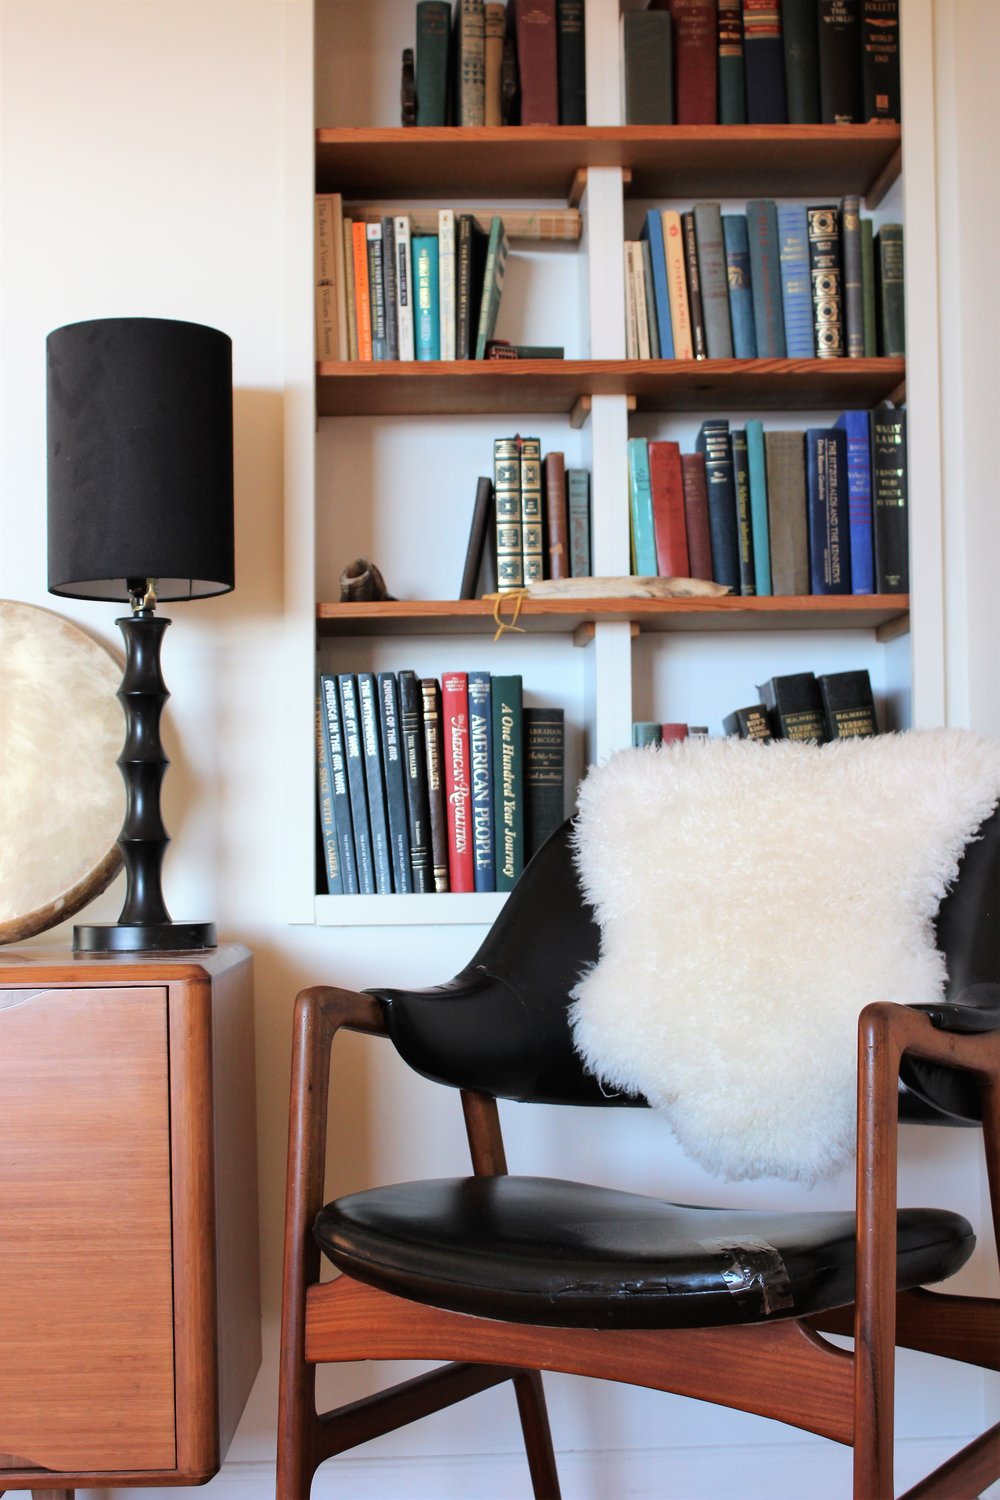 This lovely little reading nook is so inviting! I just want to curl up with one of these books in my client's collection.